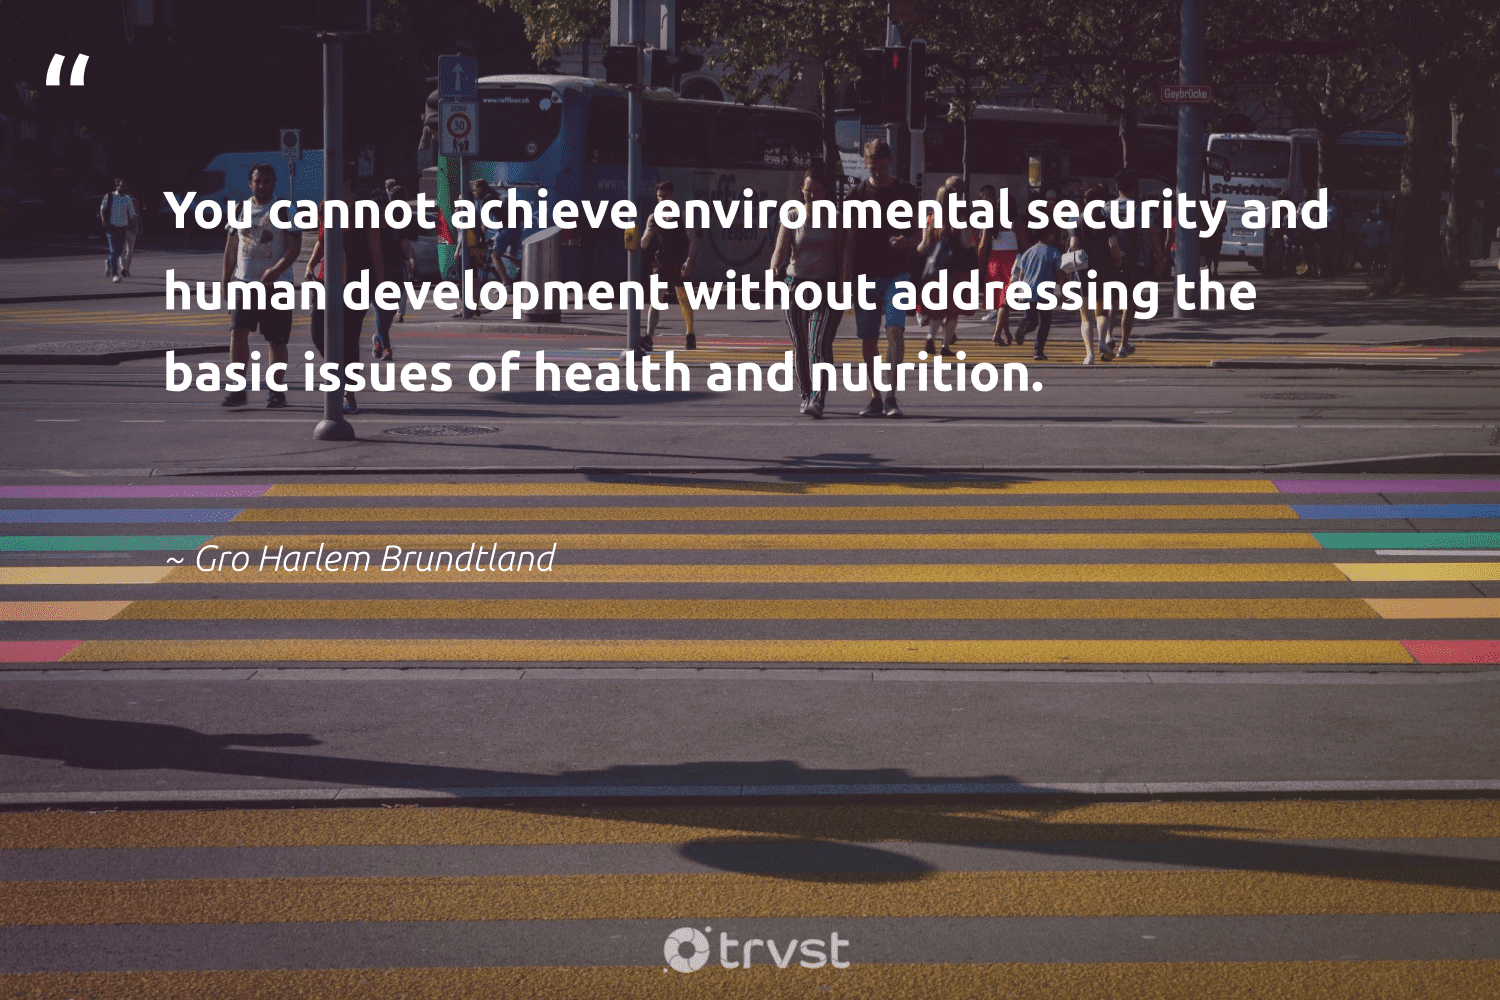 """""""You cannot achieve environmental security and human development without addressing the basic issues of health and nutrition.""""  - Gro Harlem Brundtland #trvst #quotes #environmental #health #nutrition #development #healthylife #socialgood #mindset #planetearthfirst #wellbeing #makeadifference"""